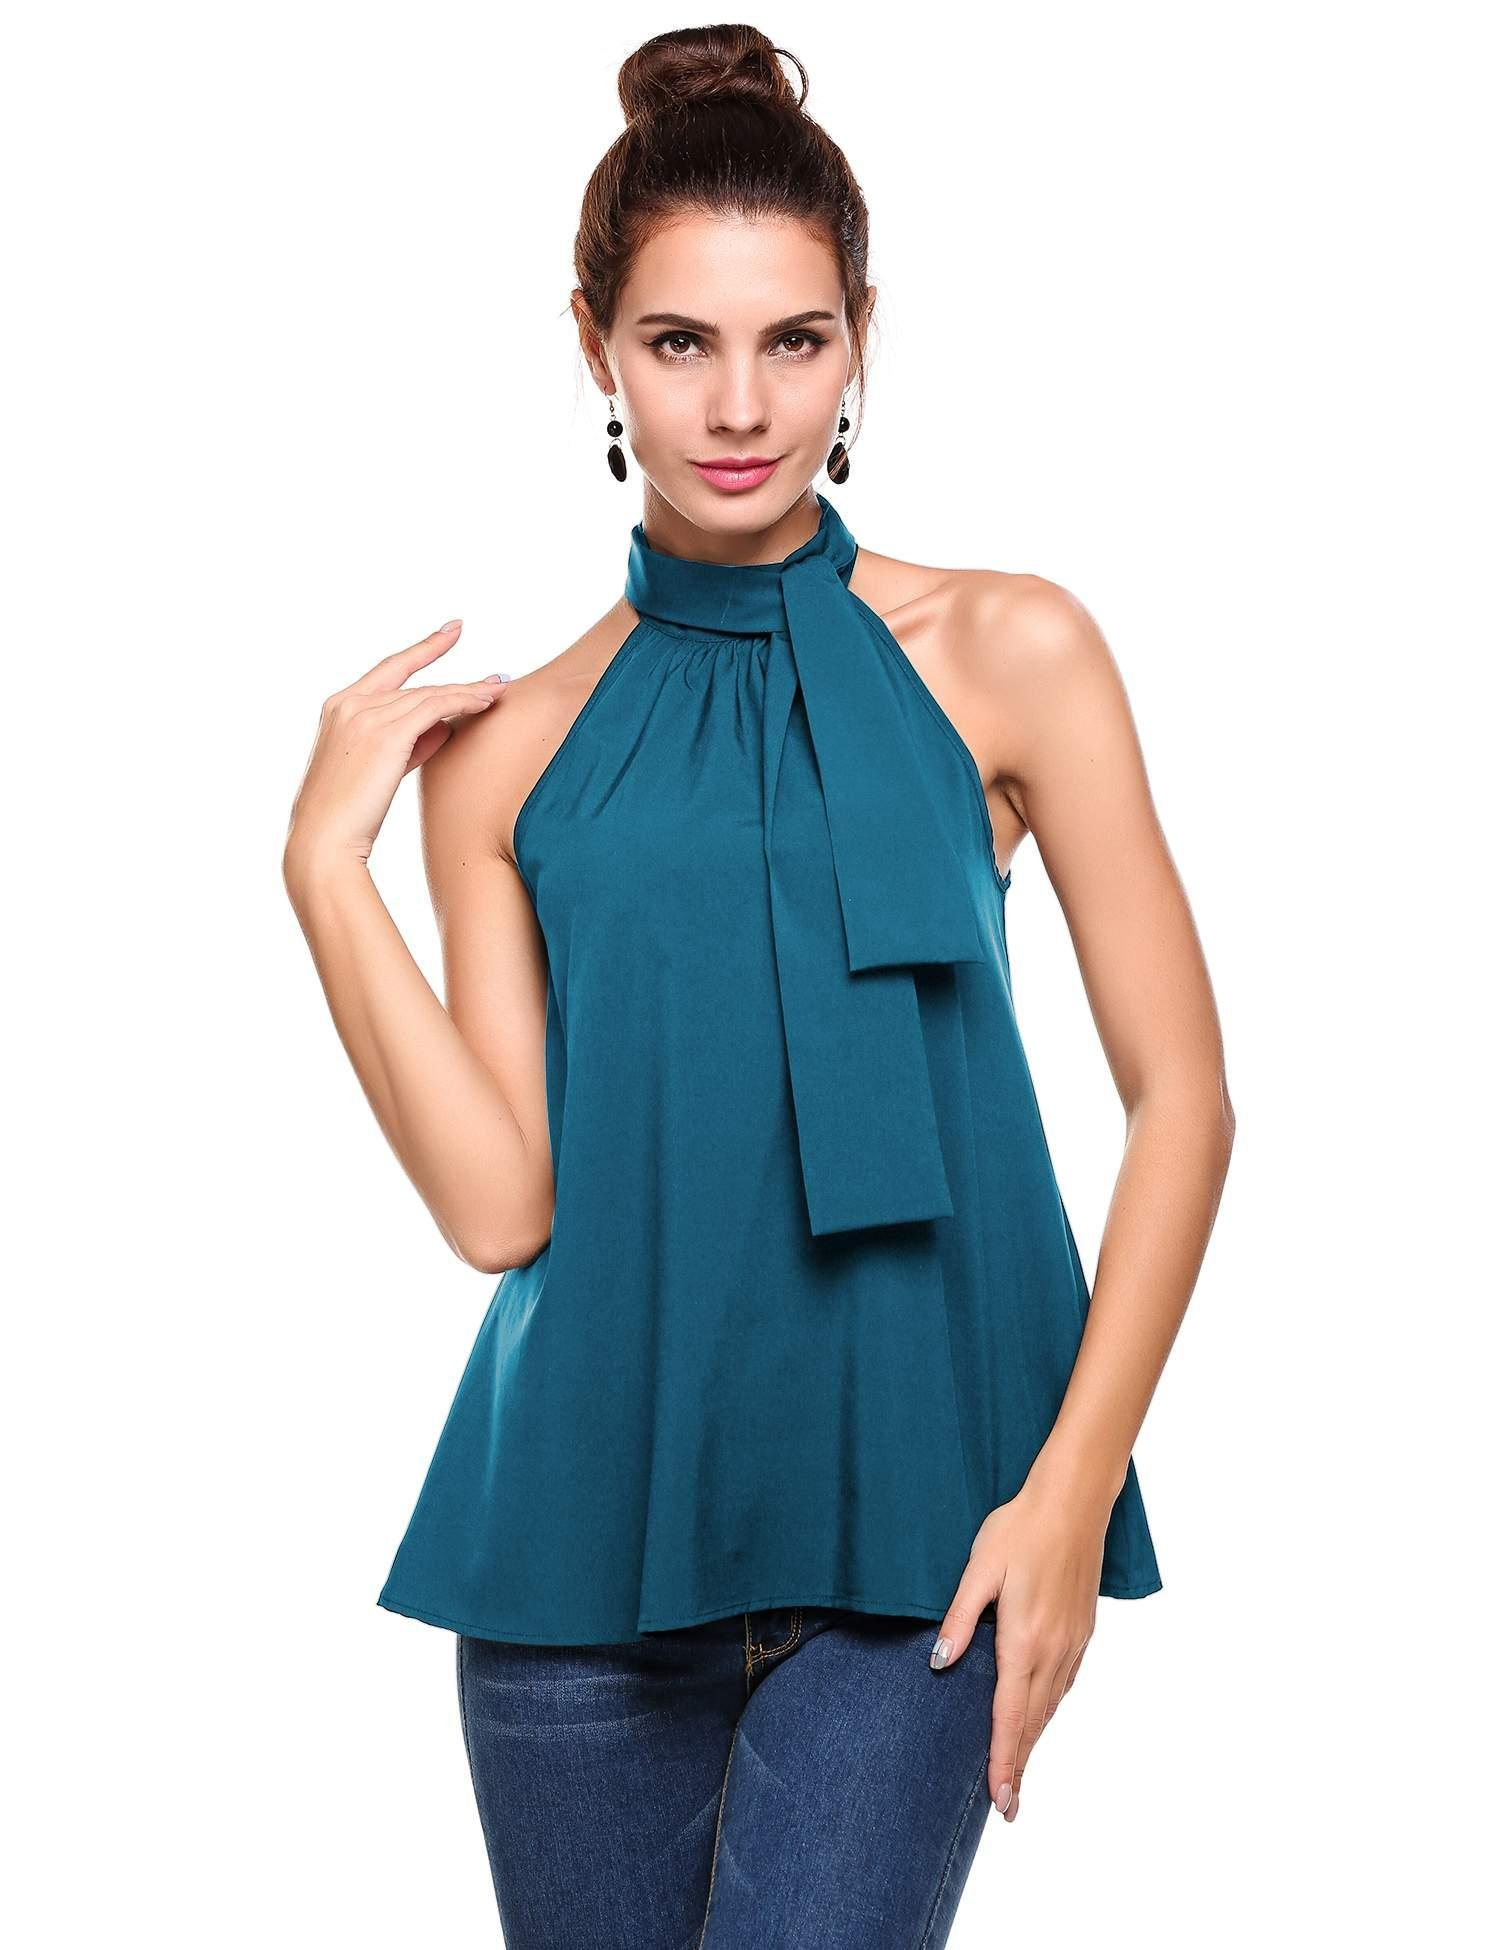 ThinIce Women Summer Sleeveless Office Blouse Halter Tie Back A Line Tank Shirt, Peacock Blue, 3X